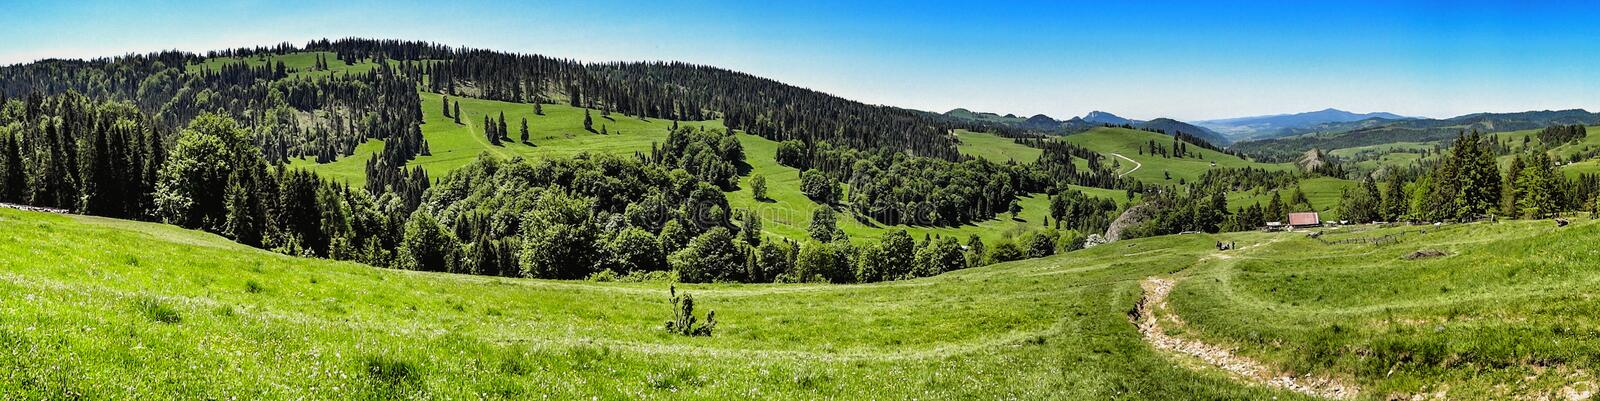 Wide panorama of Pieniny range in southern Poland. Landscape of Pieniny and Gorce mountain range in beskids in Poland. Pieniny Mountains in the south of Poland royalty free stock photos